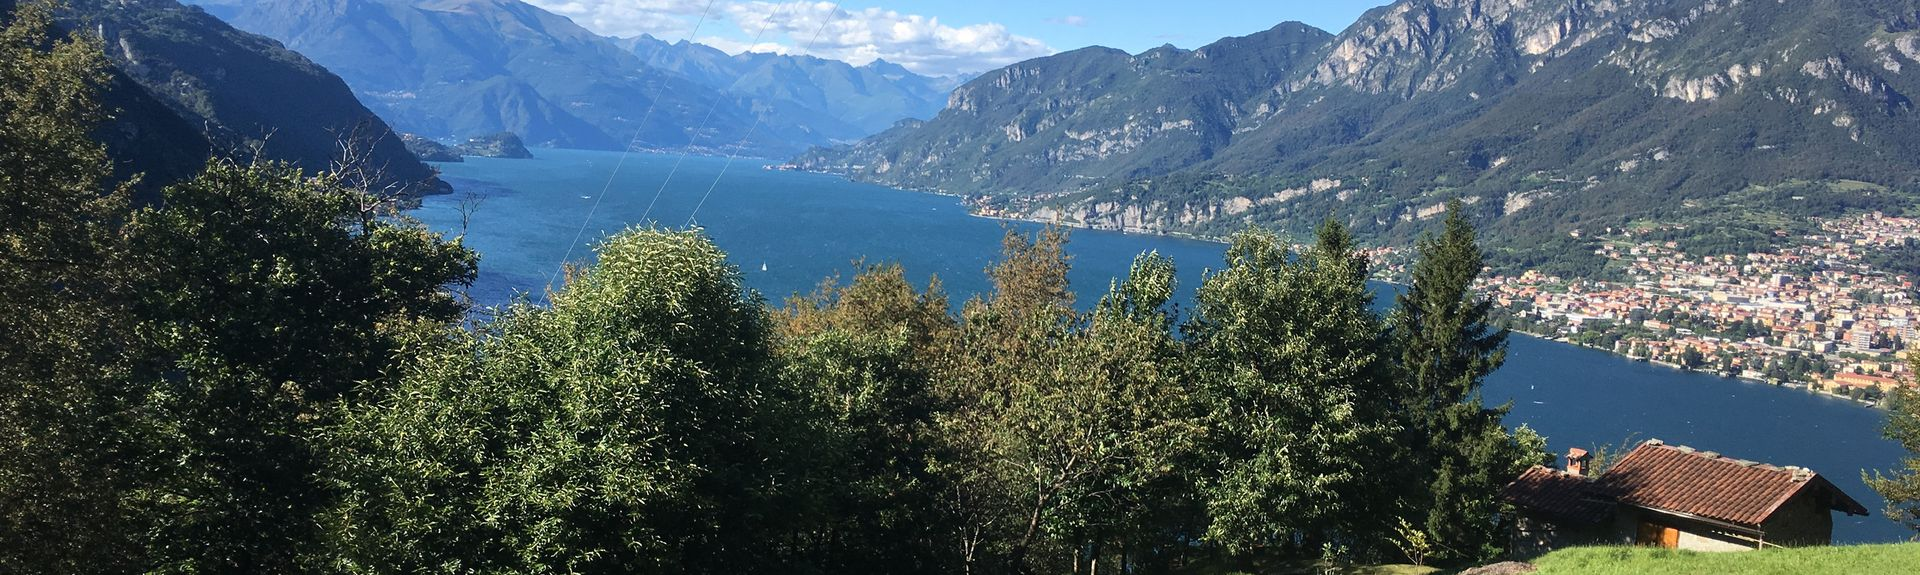 Pescate, Lecco, Lombardy, Italy